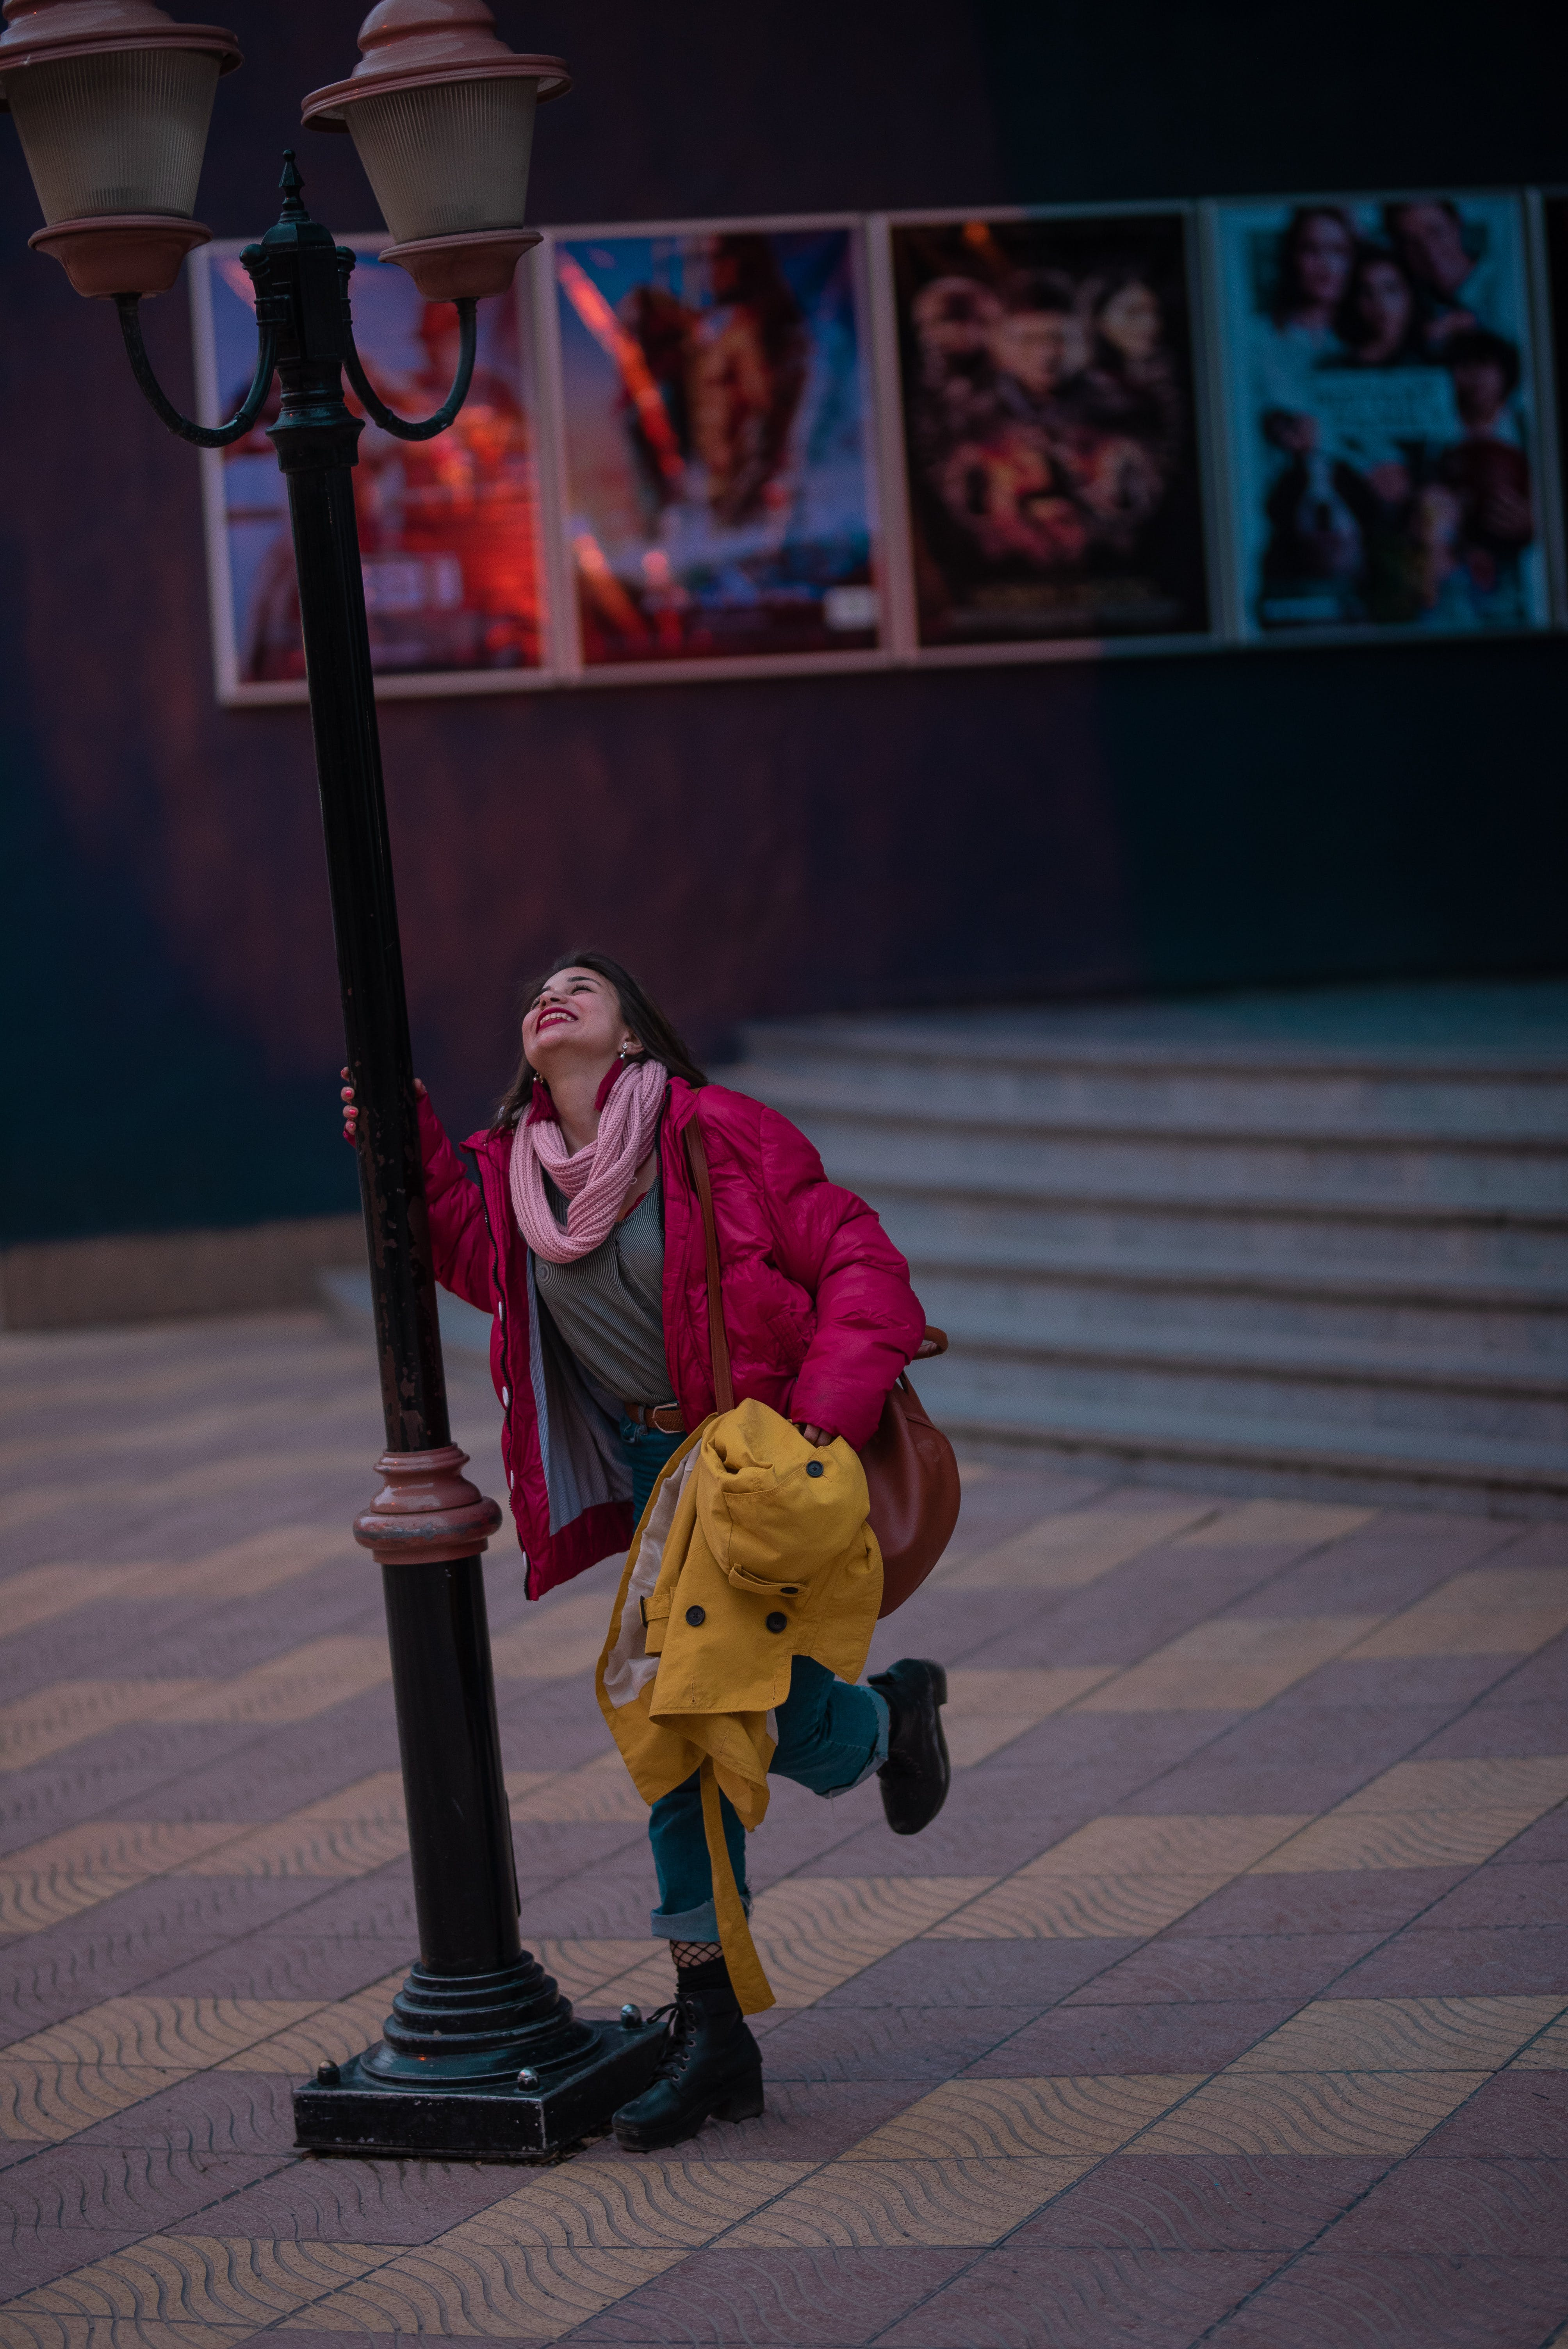 Woman Holding On Lamp Post